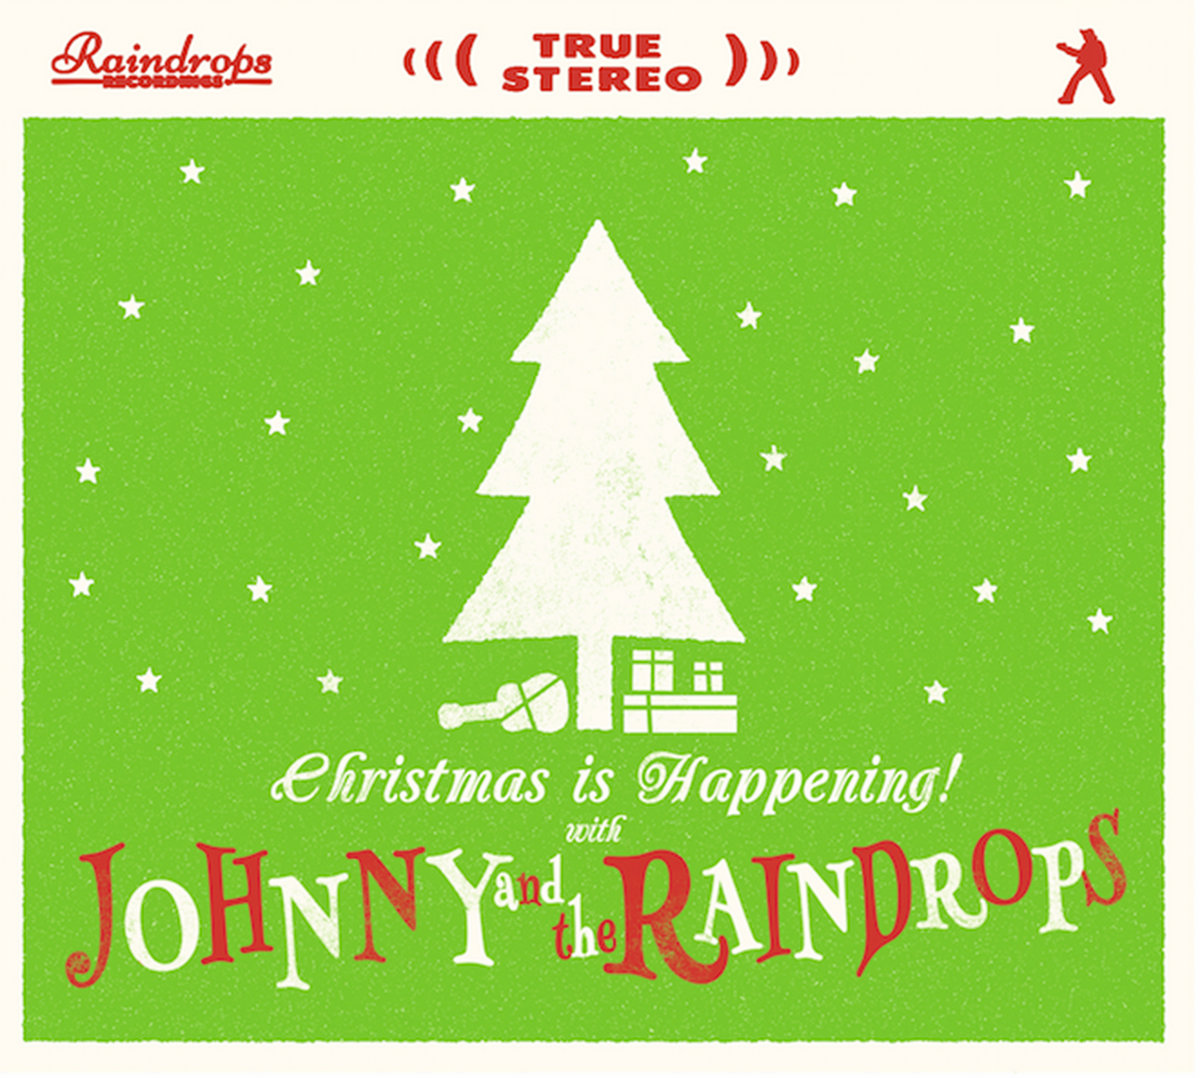 Christmas is Happening! | Johnny and the Raindrops